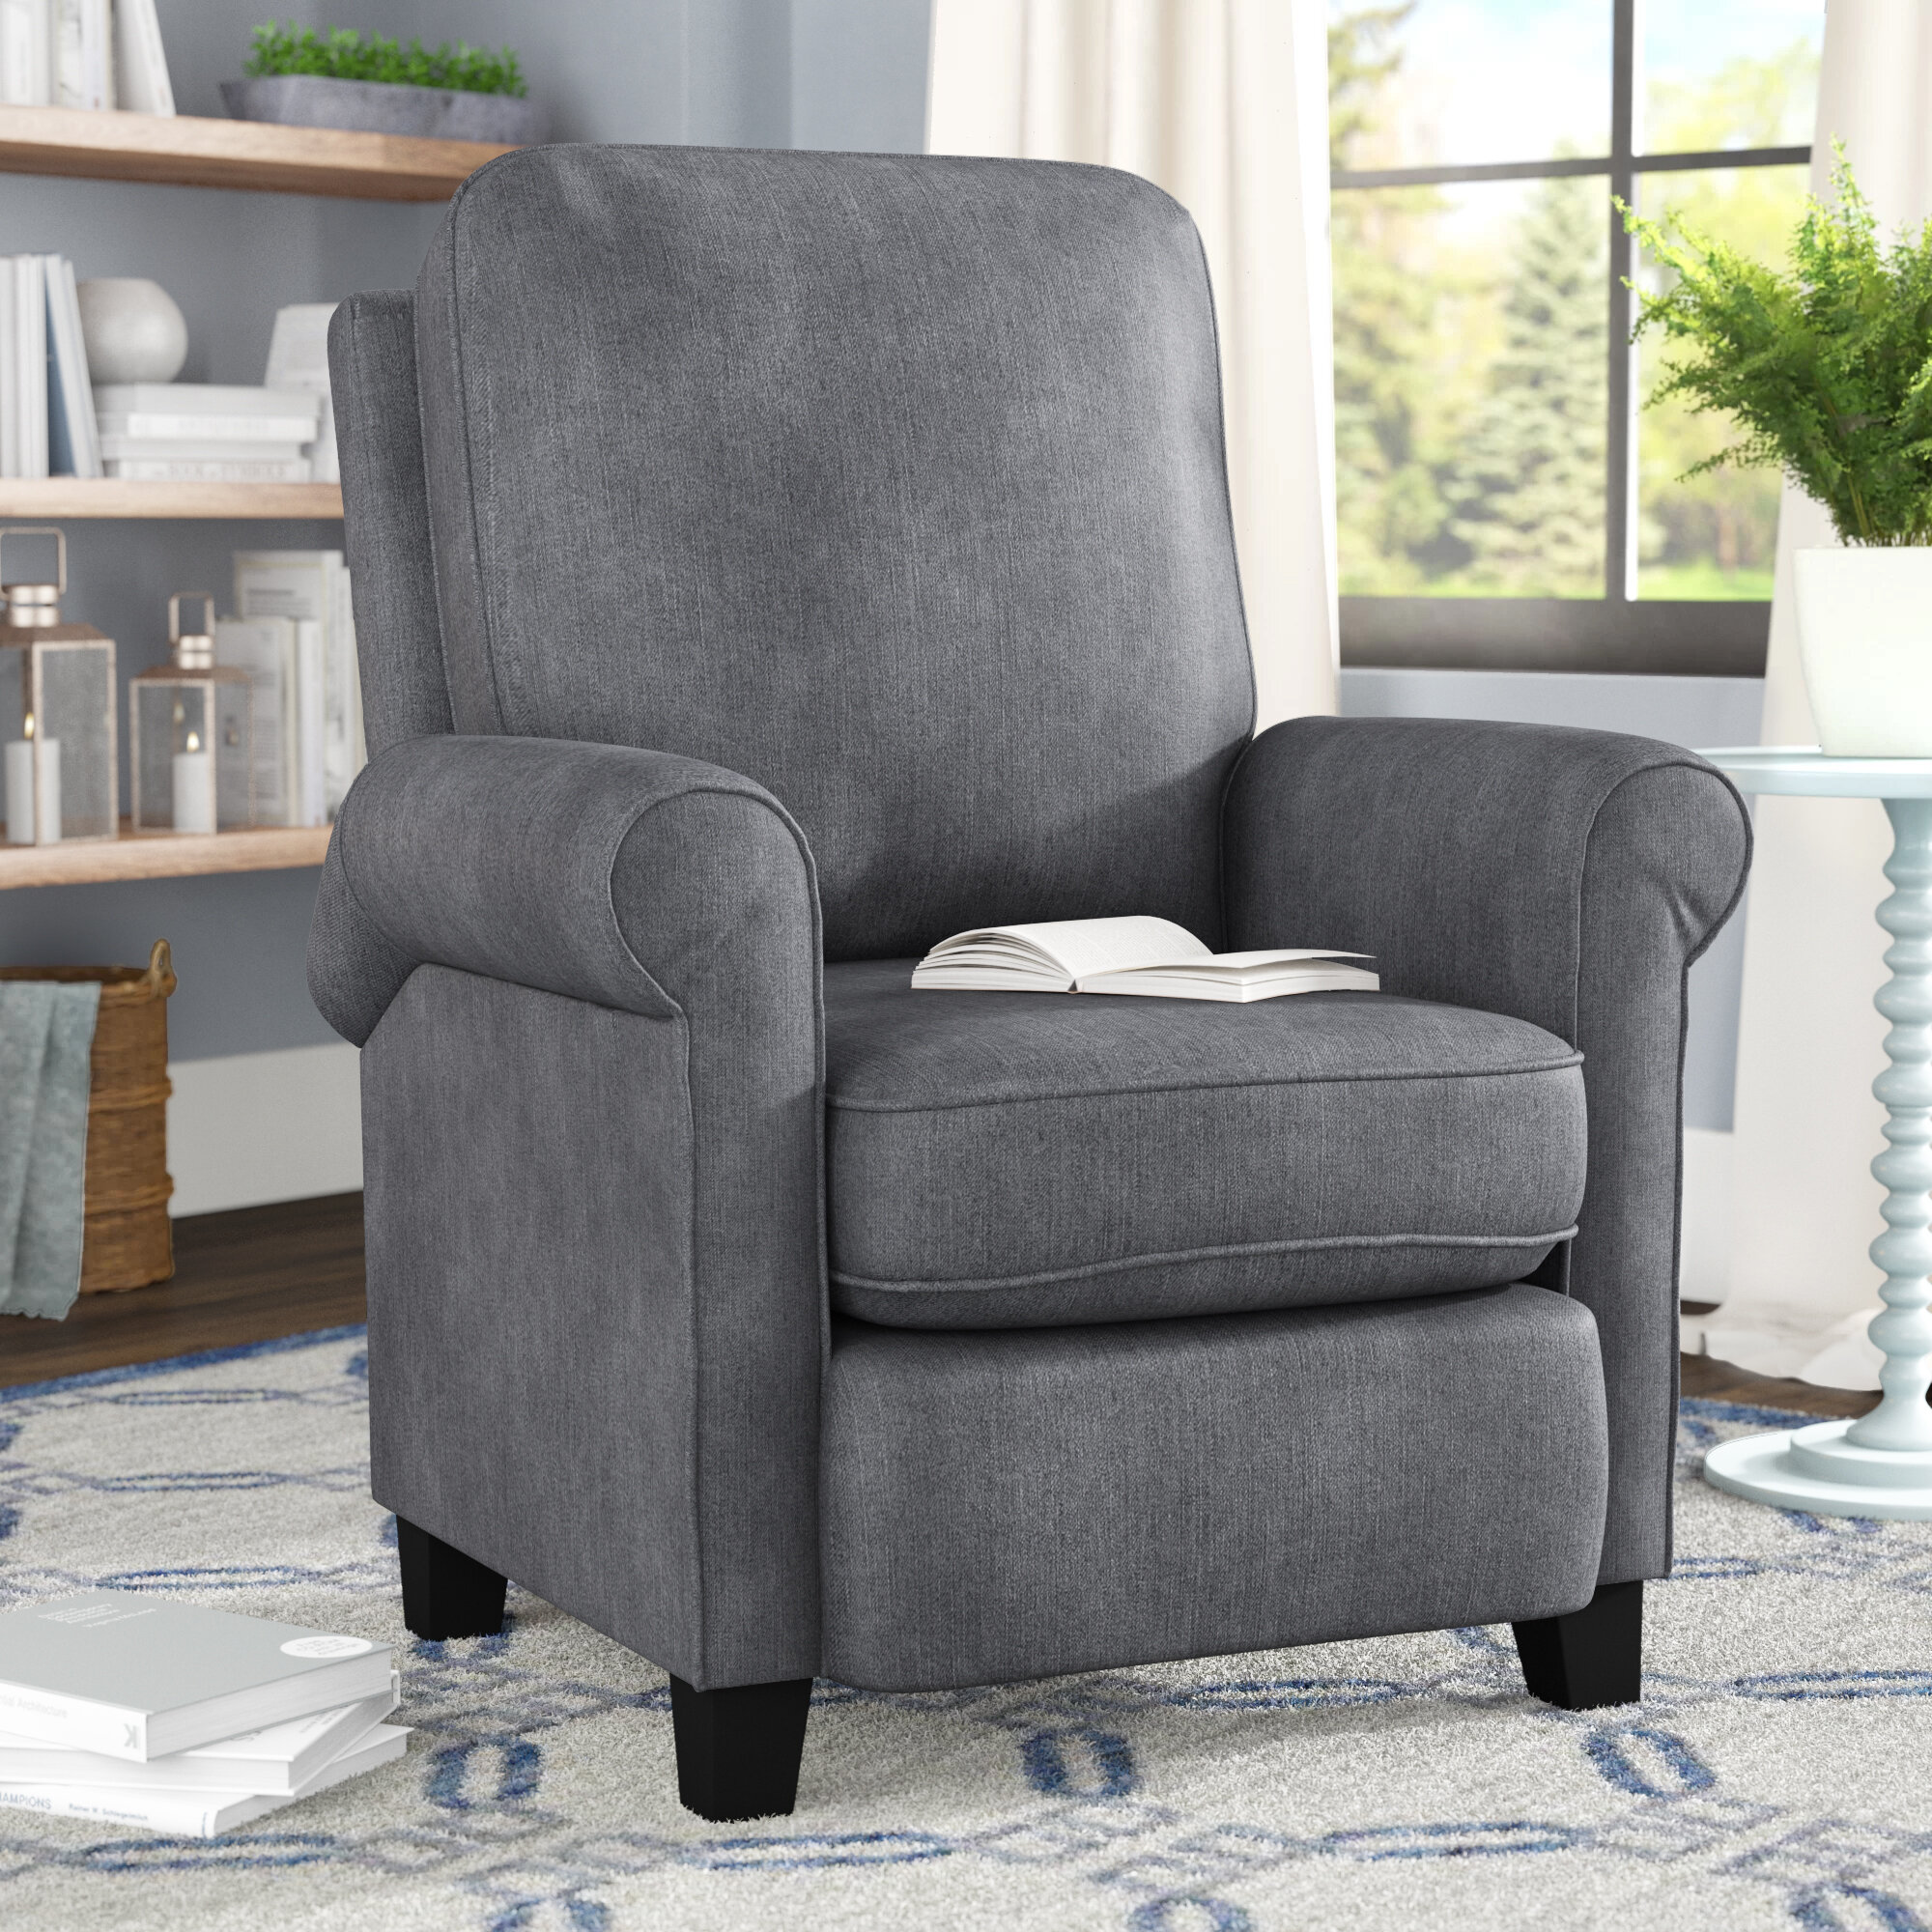 Bonzy Manual Recliner Modern Arm Push Back Chair With Roll Tight Armrest Seat Cushions Living Room Reclining Chair Blue Grey